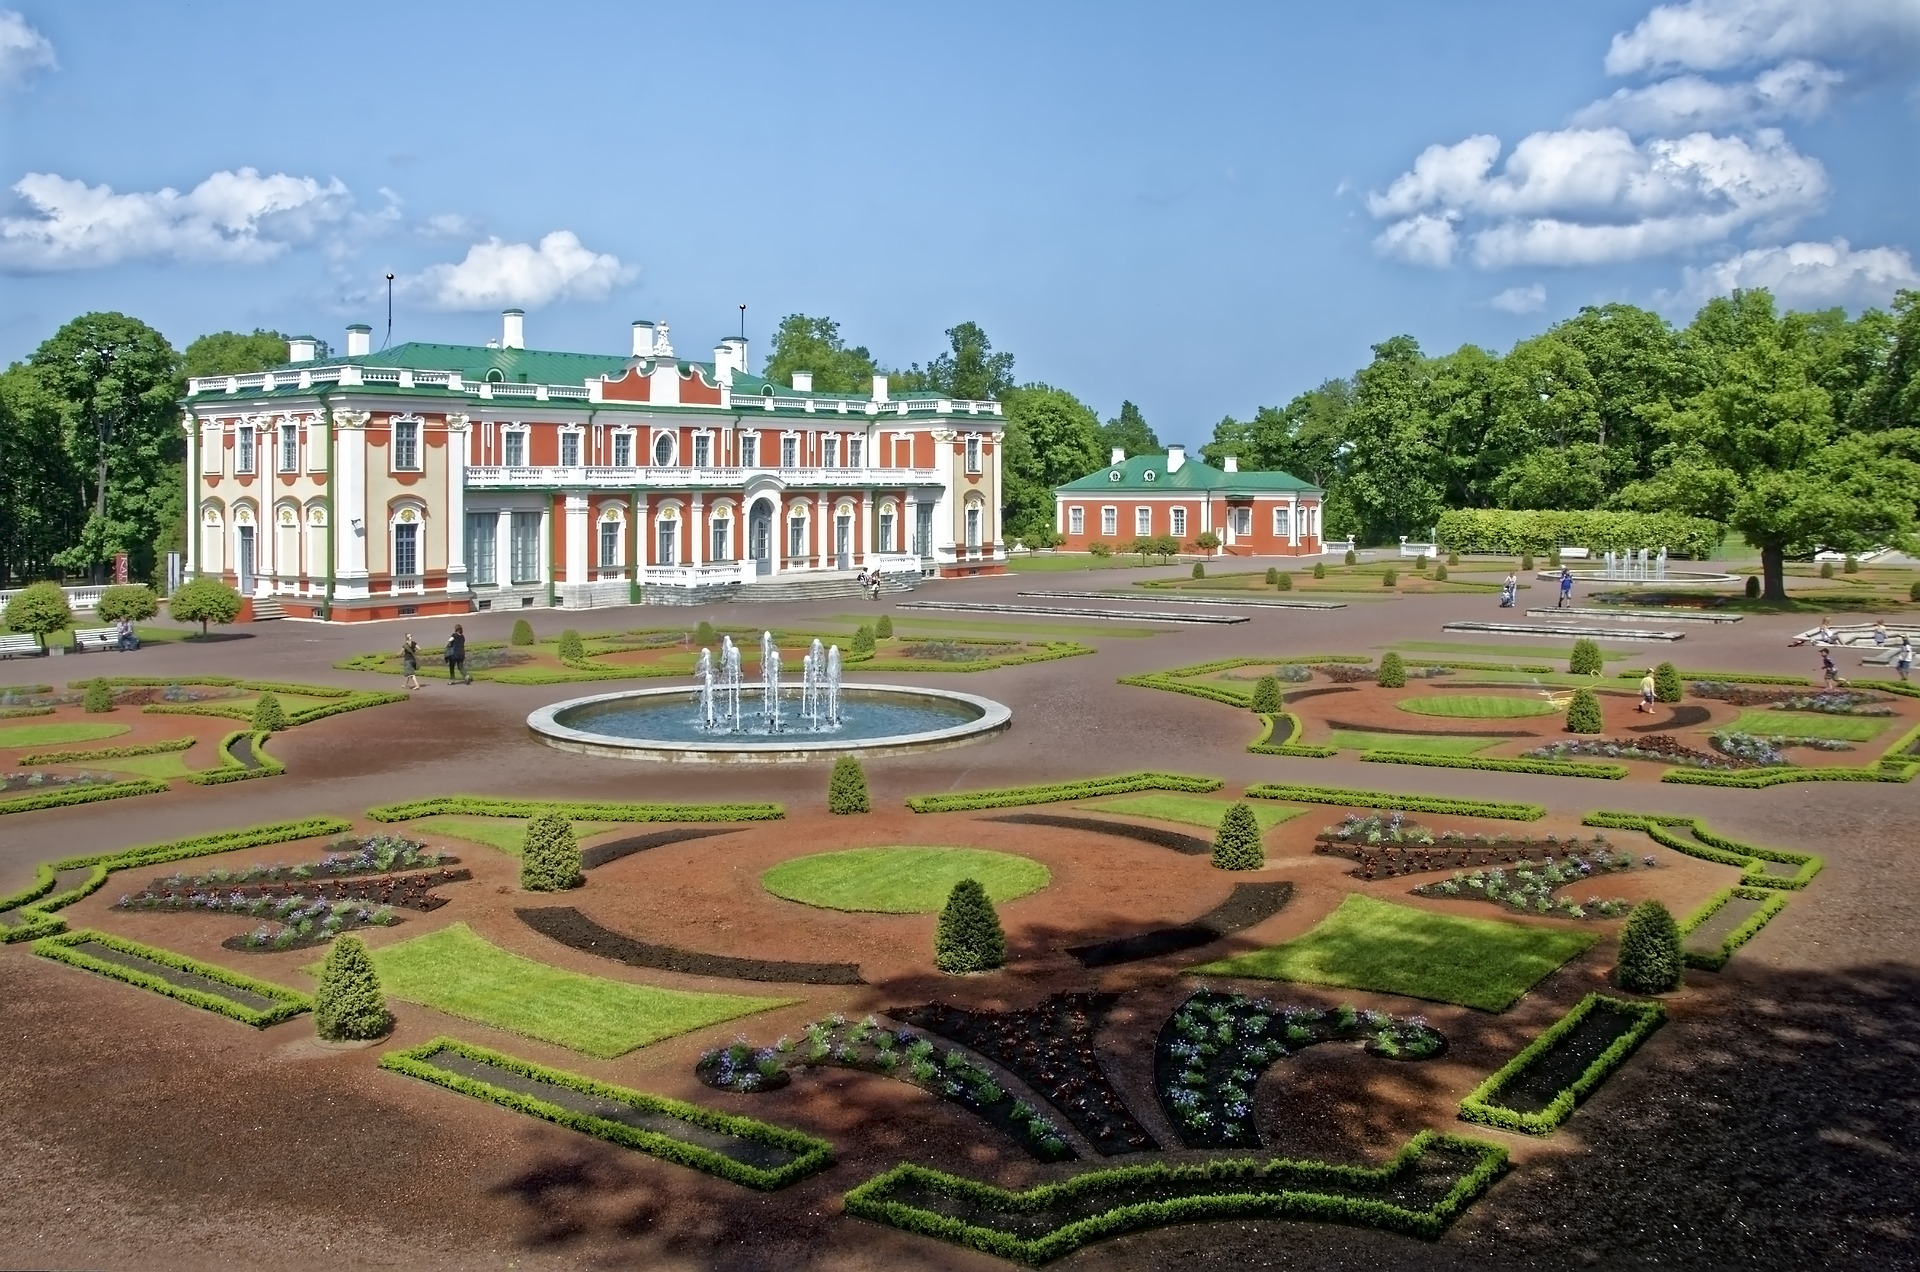 The perfectly-manicured grounds of Kadriorg Palace are perfect for an afternoon stroll when the sun is shining.